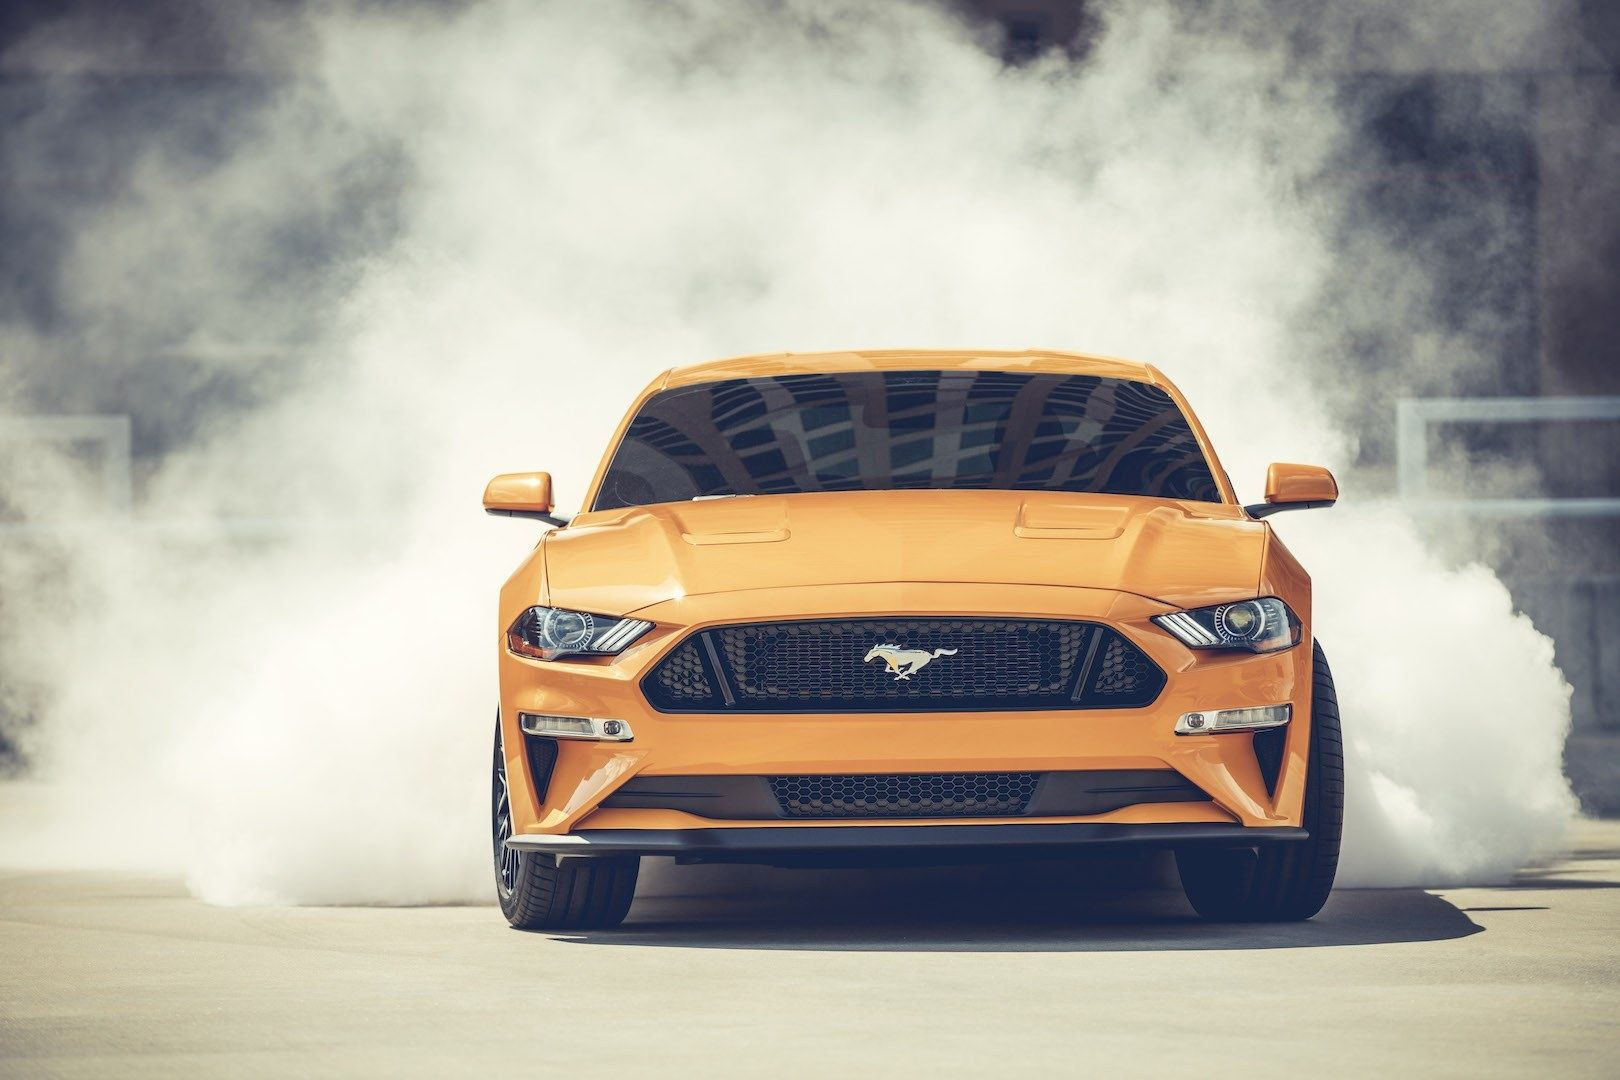 New 2020 Ford Mustang Gt 800 Hp Release Date And Performance Ford Mustang Ford Mustang Shelby Gt Sports Car Photos